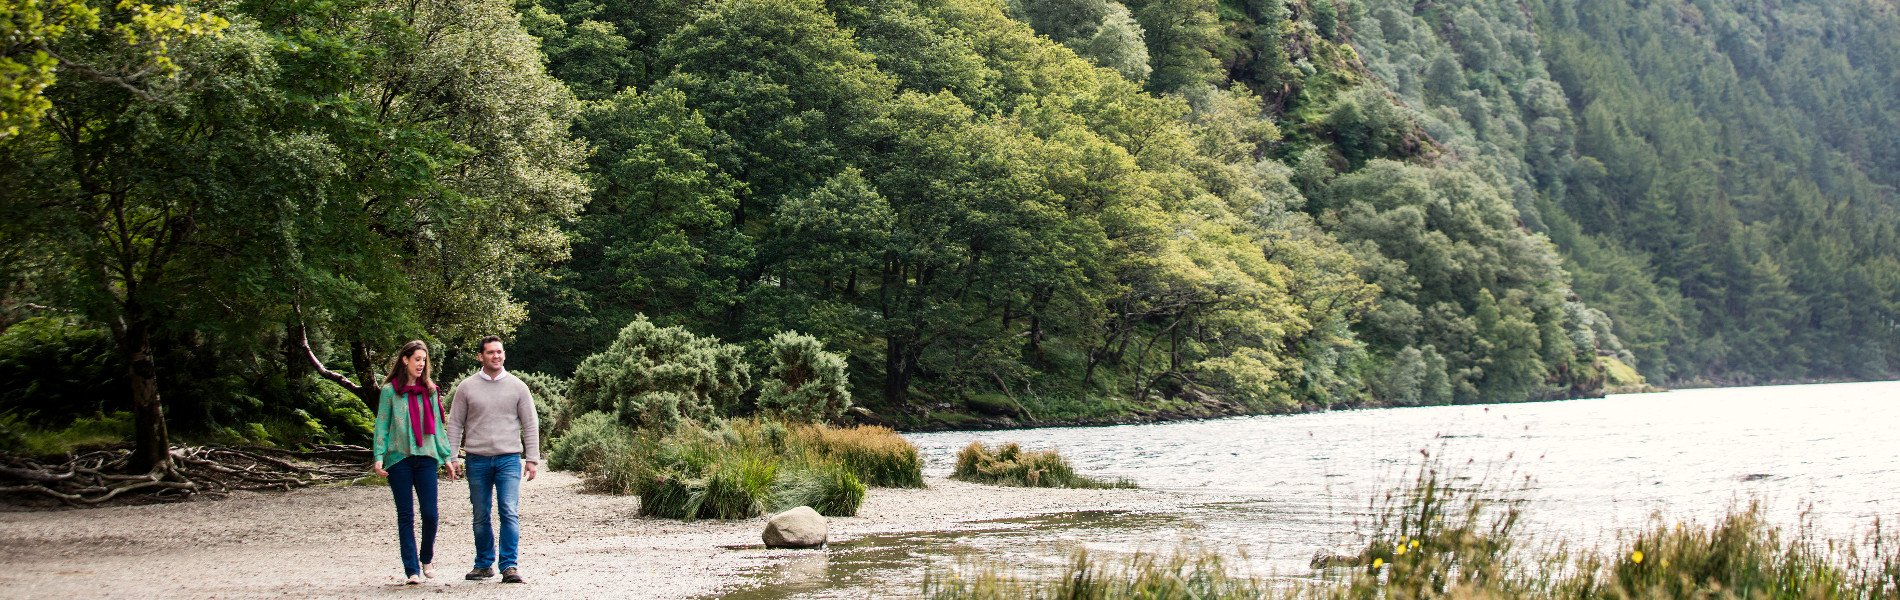 Things to do in Wicklow, Glendalough